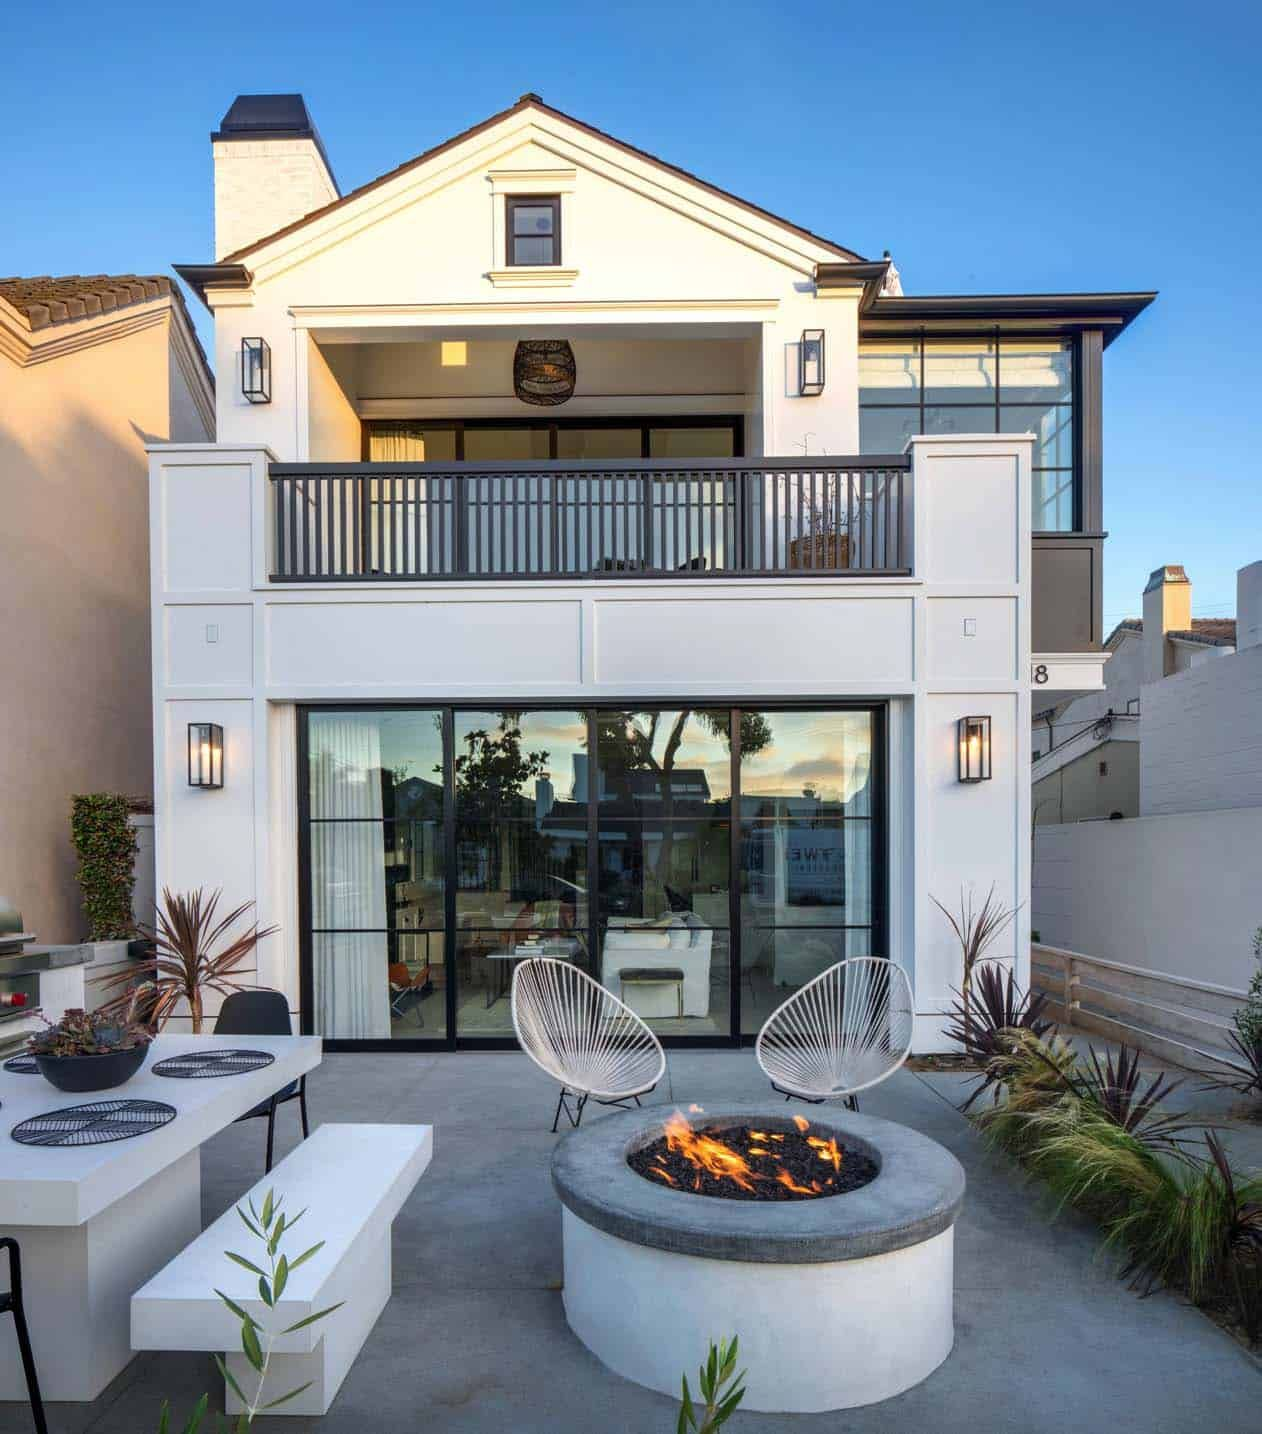 Southern California Beach House With Gorgeous Industrial Chic Accents California Beach House Beach House Interior Modern Beach House